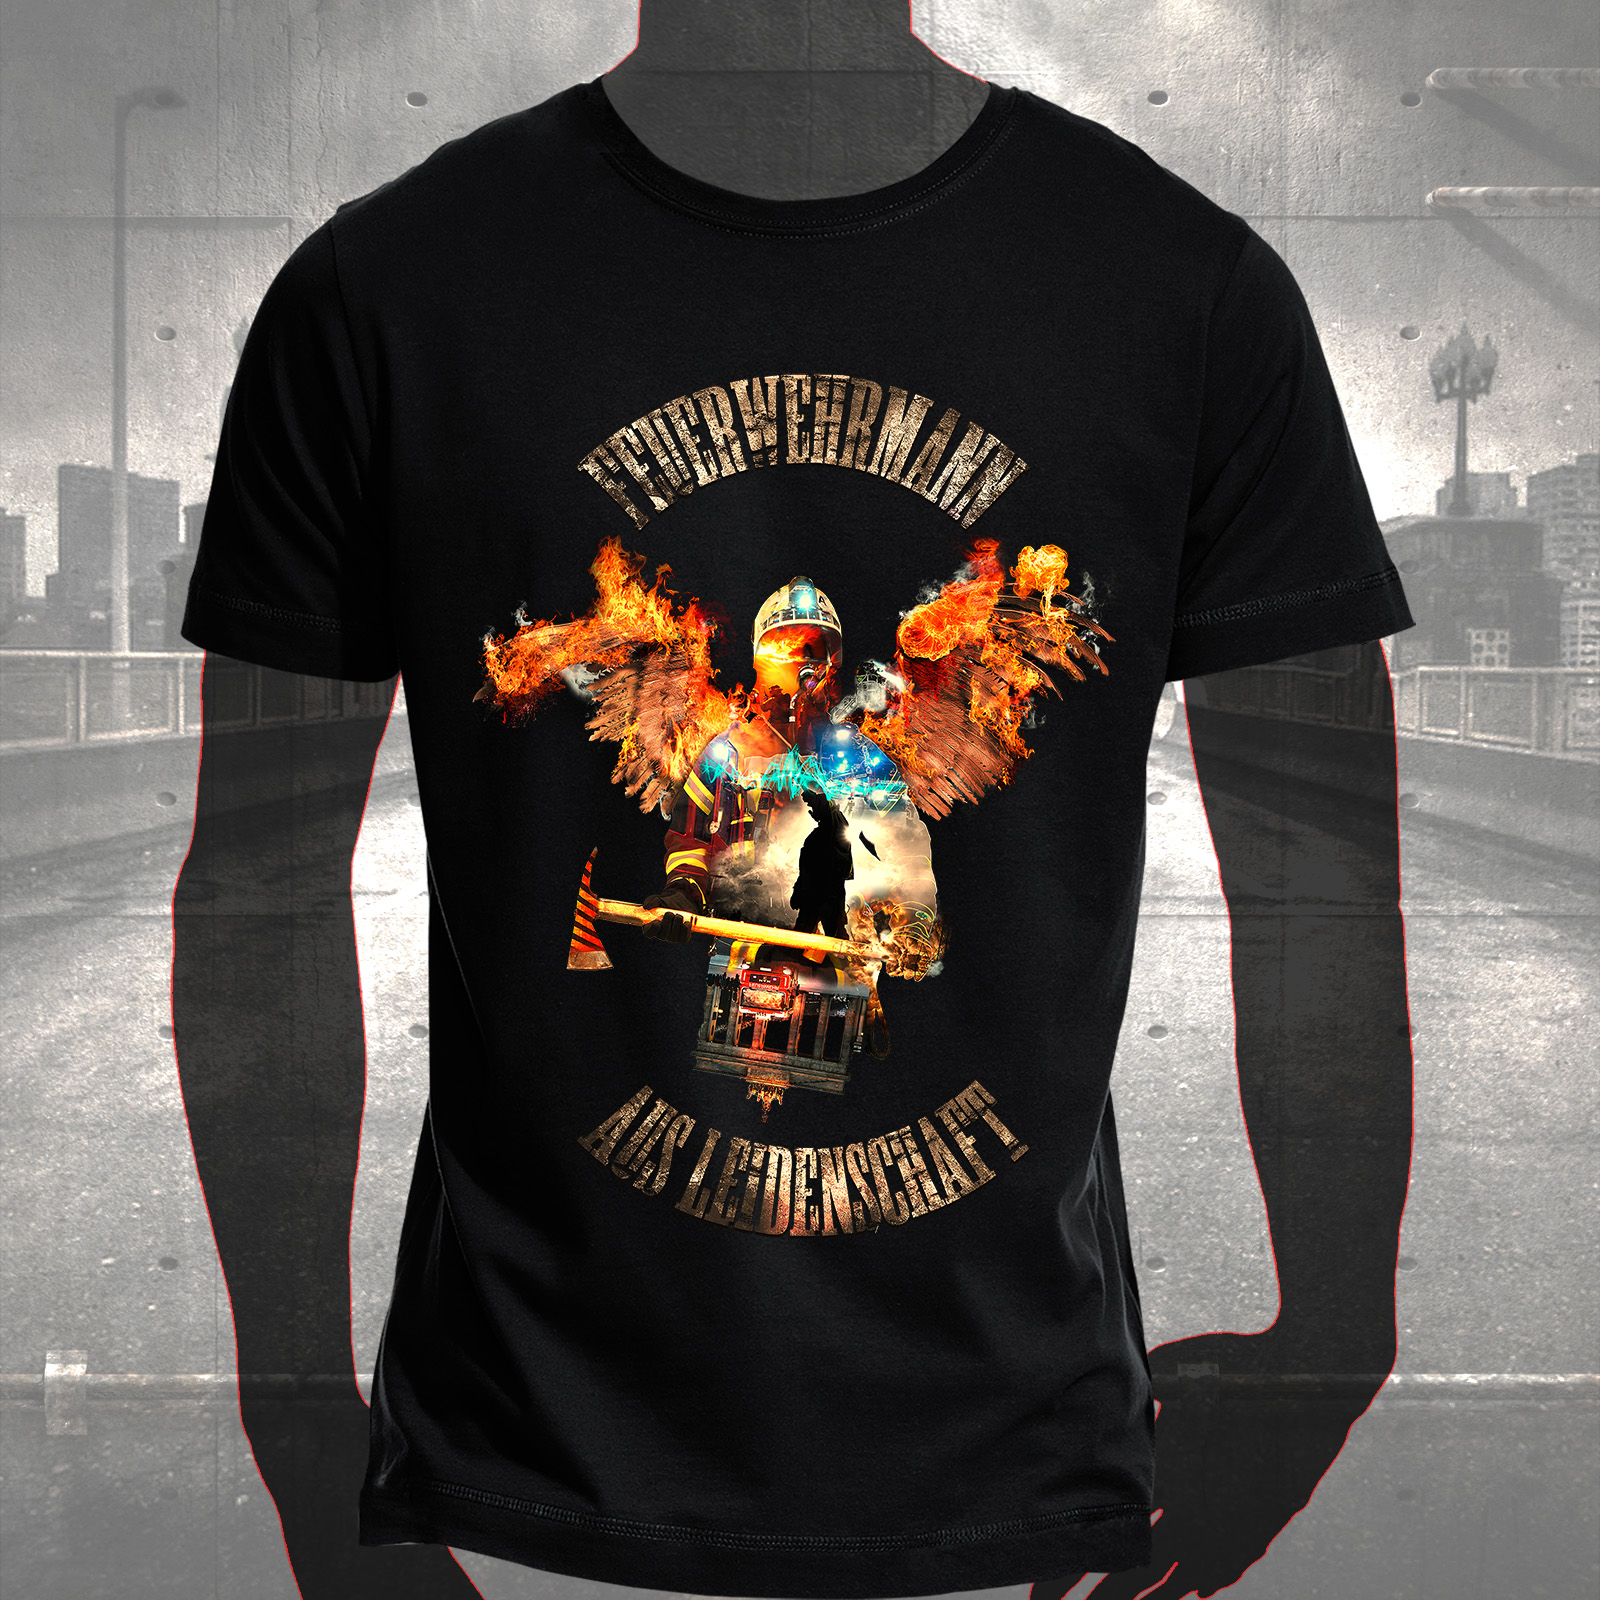 T shirt fire angel hauptstadtfeuerwehr for On fire brand t shirts